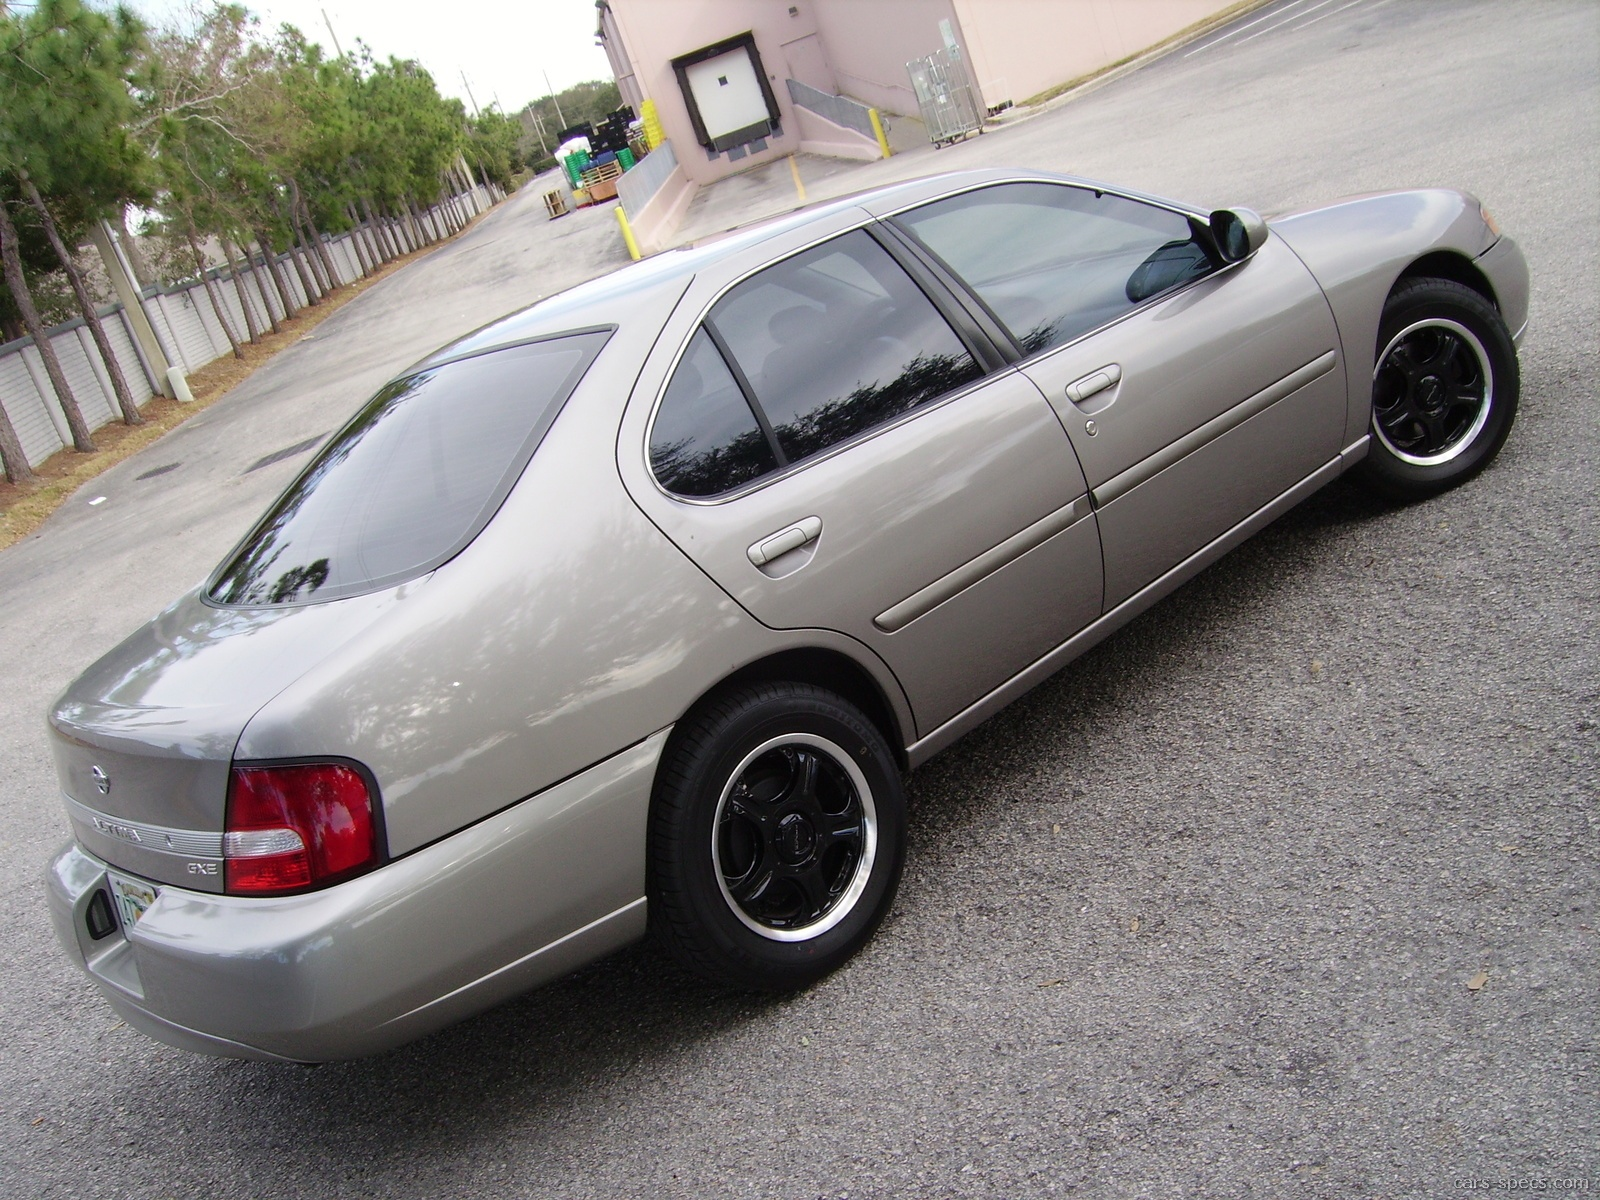 2000 nissan altima sedan specifications pictures prices rh cars specs com 2000 nissan altima manual transmission for sale 2000 nissan altima repair manual free download